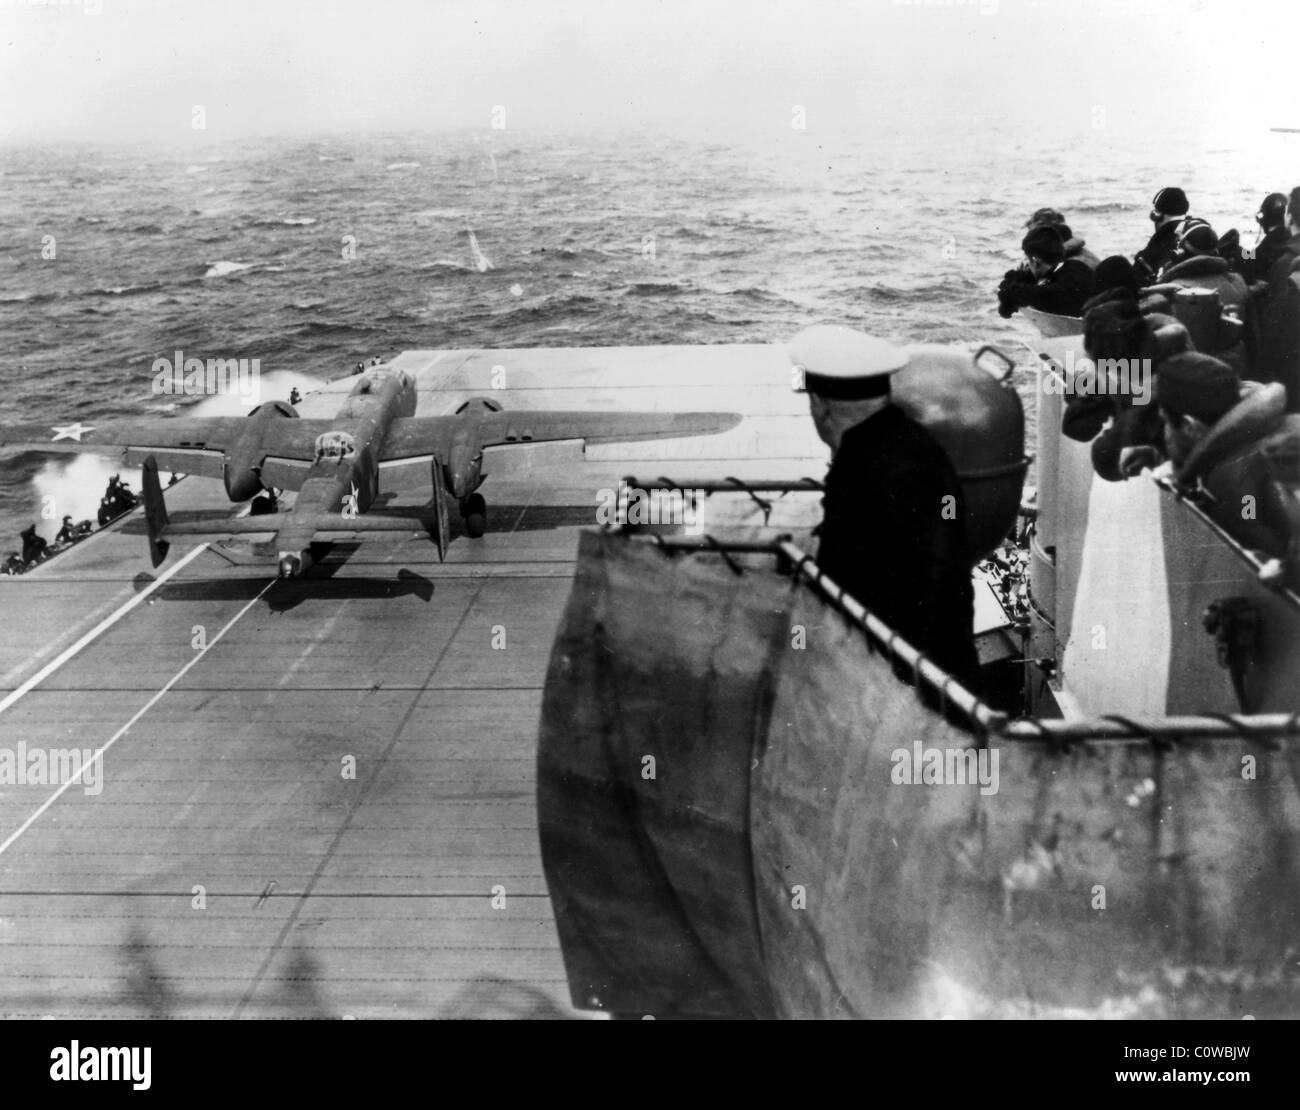 B-25 about to take off from an aircraft carrier somewhere in the Pacific Ocean. - Stock Image